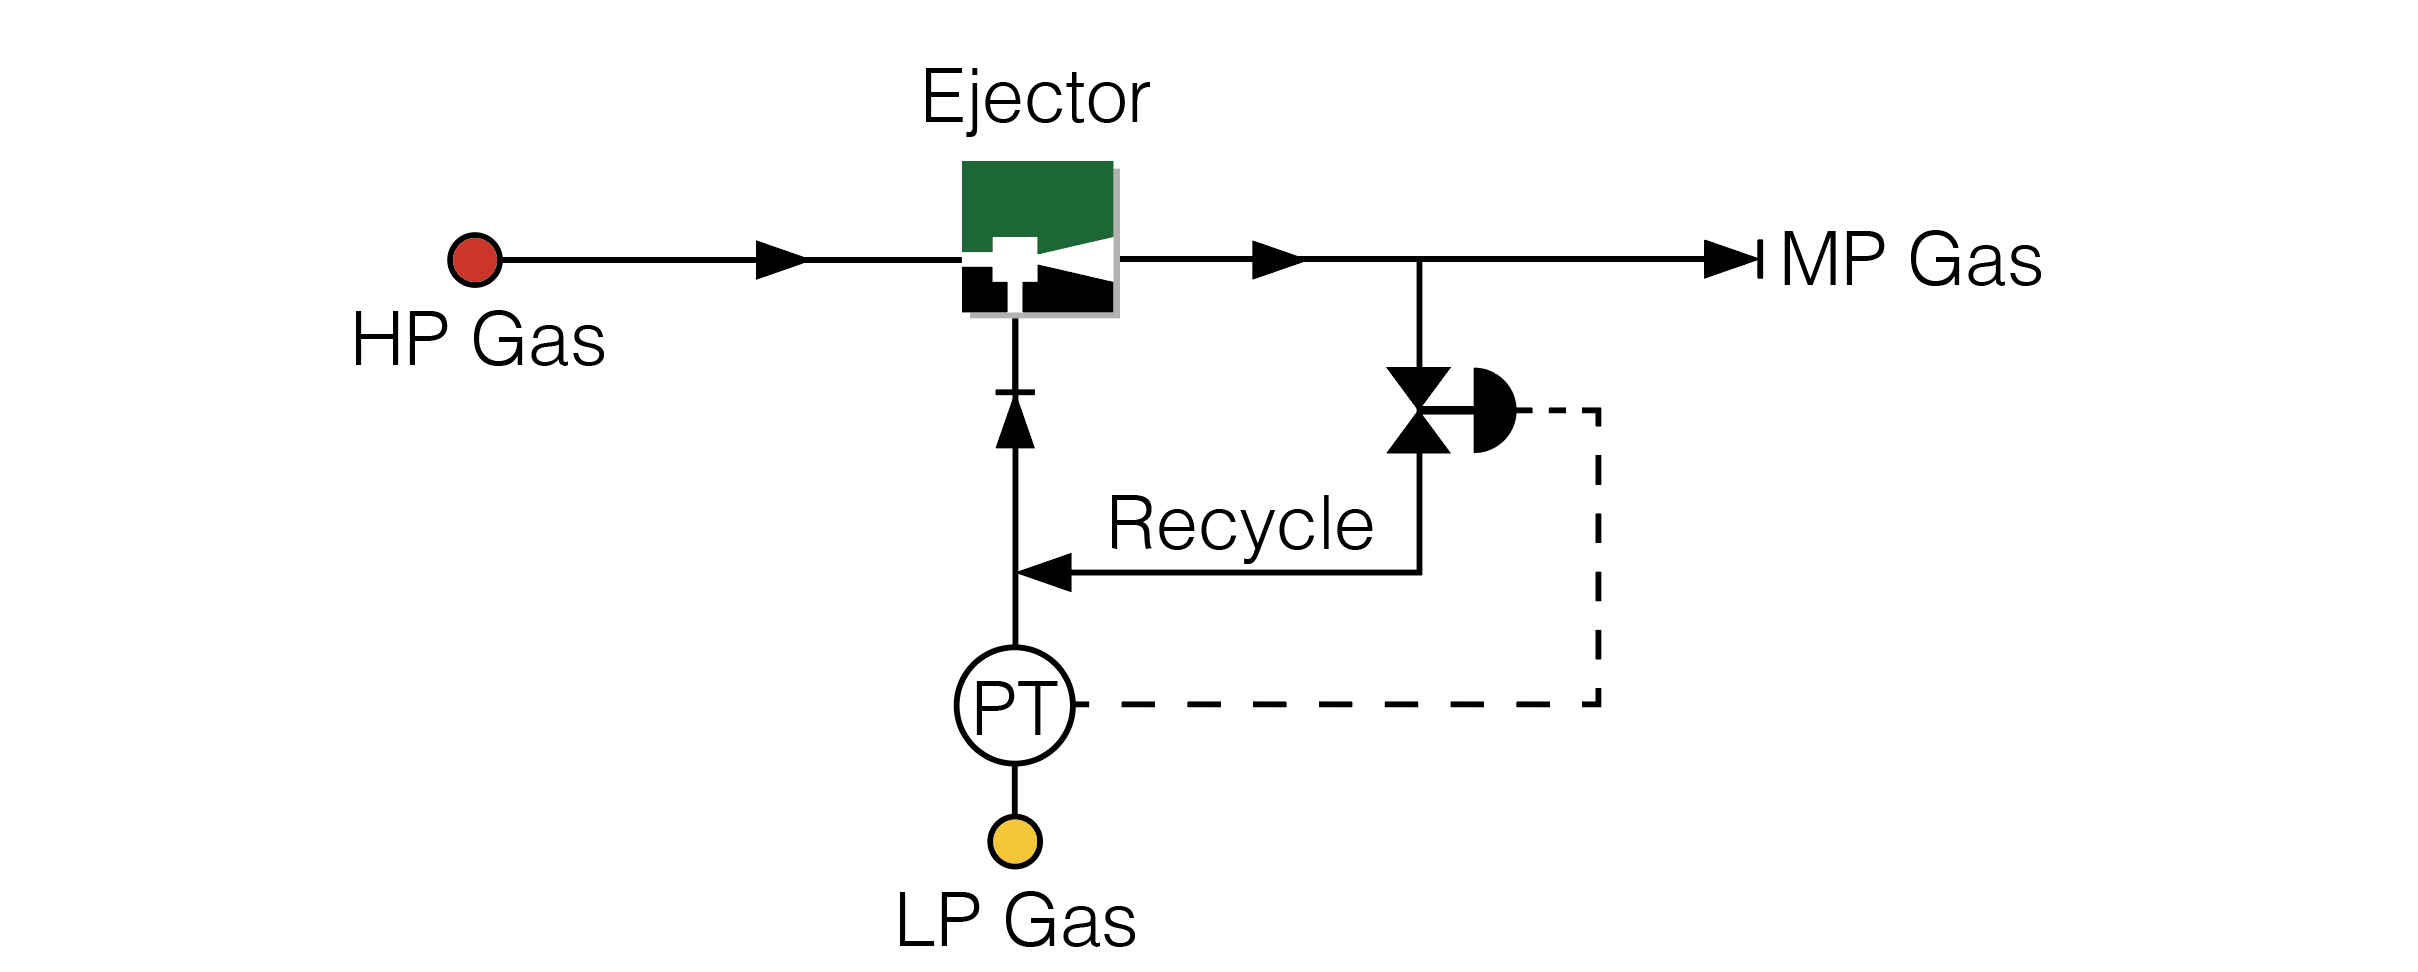 Gas Ejector Control using Recycle Control Method